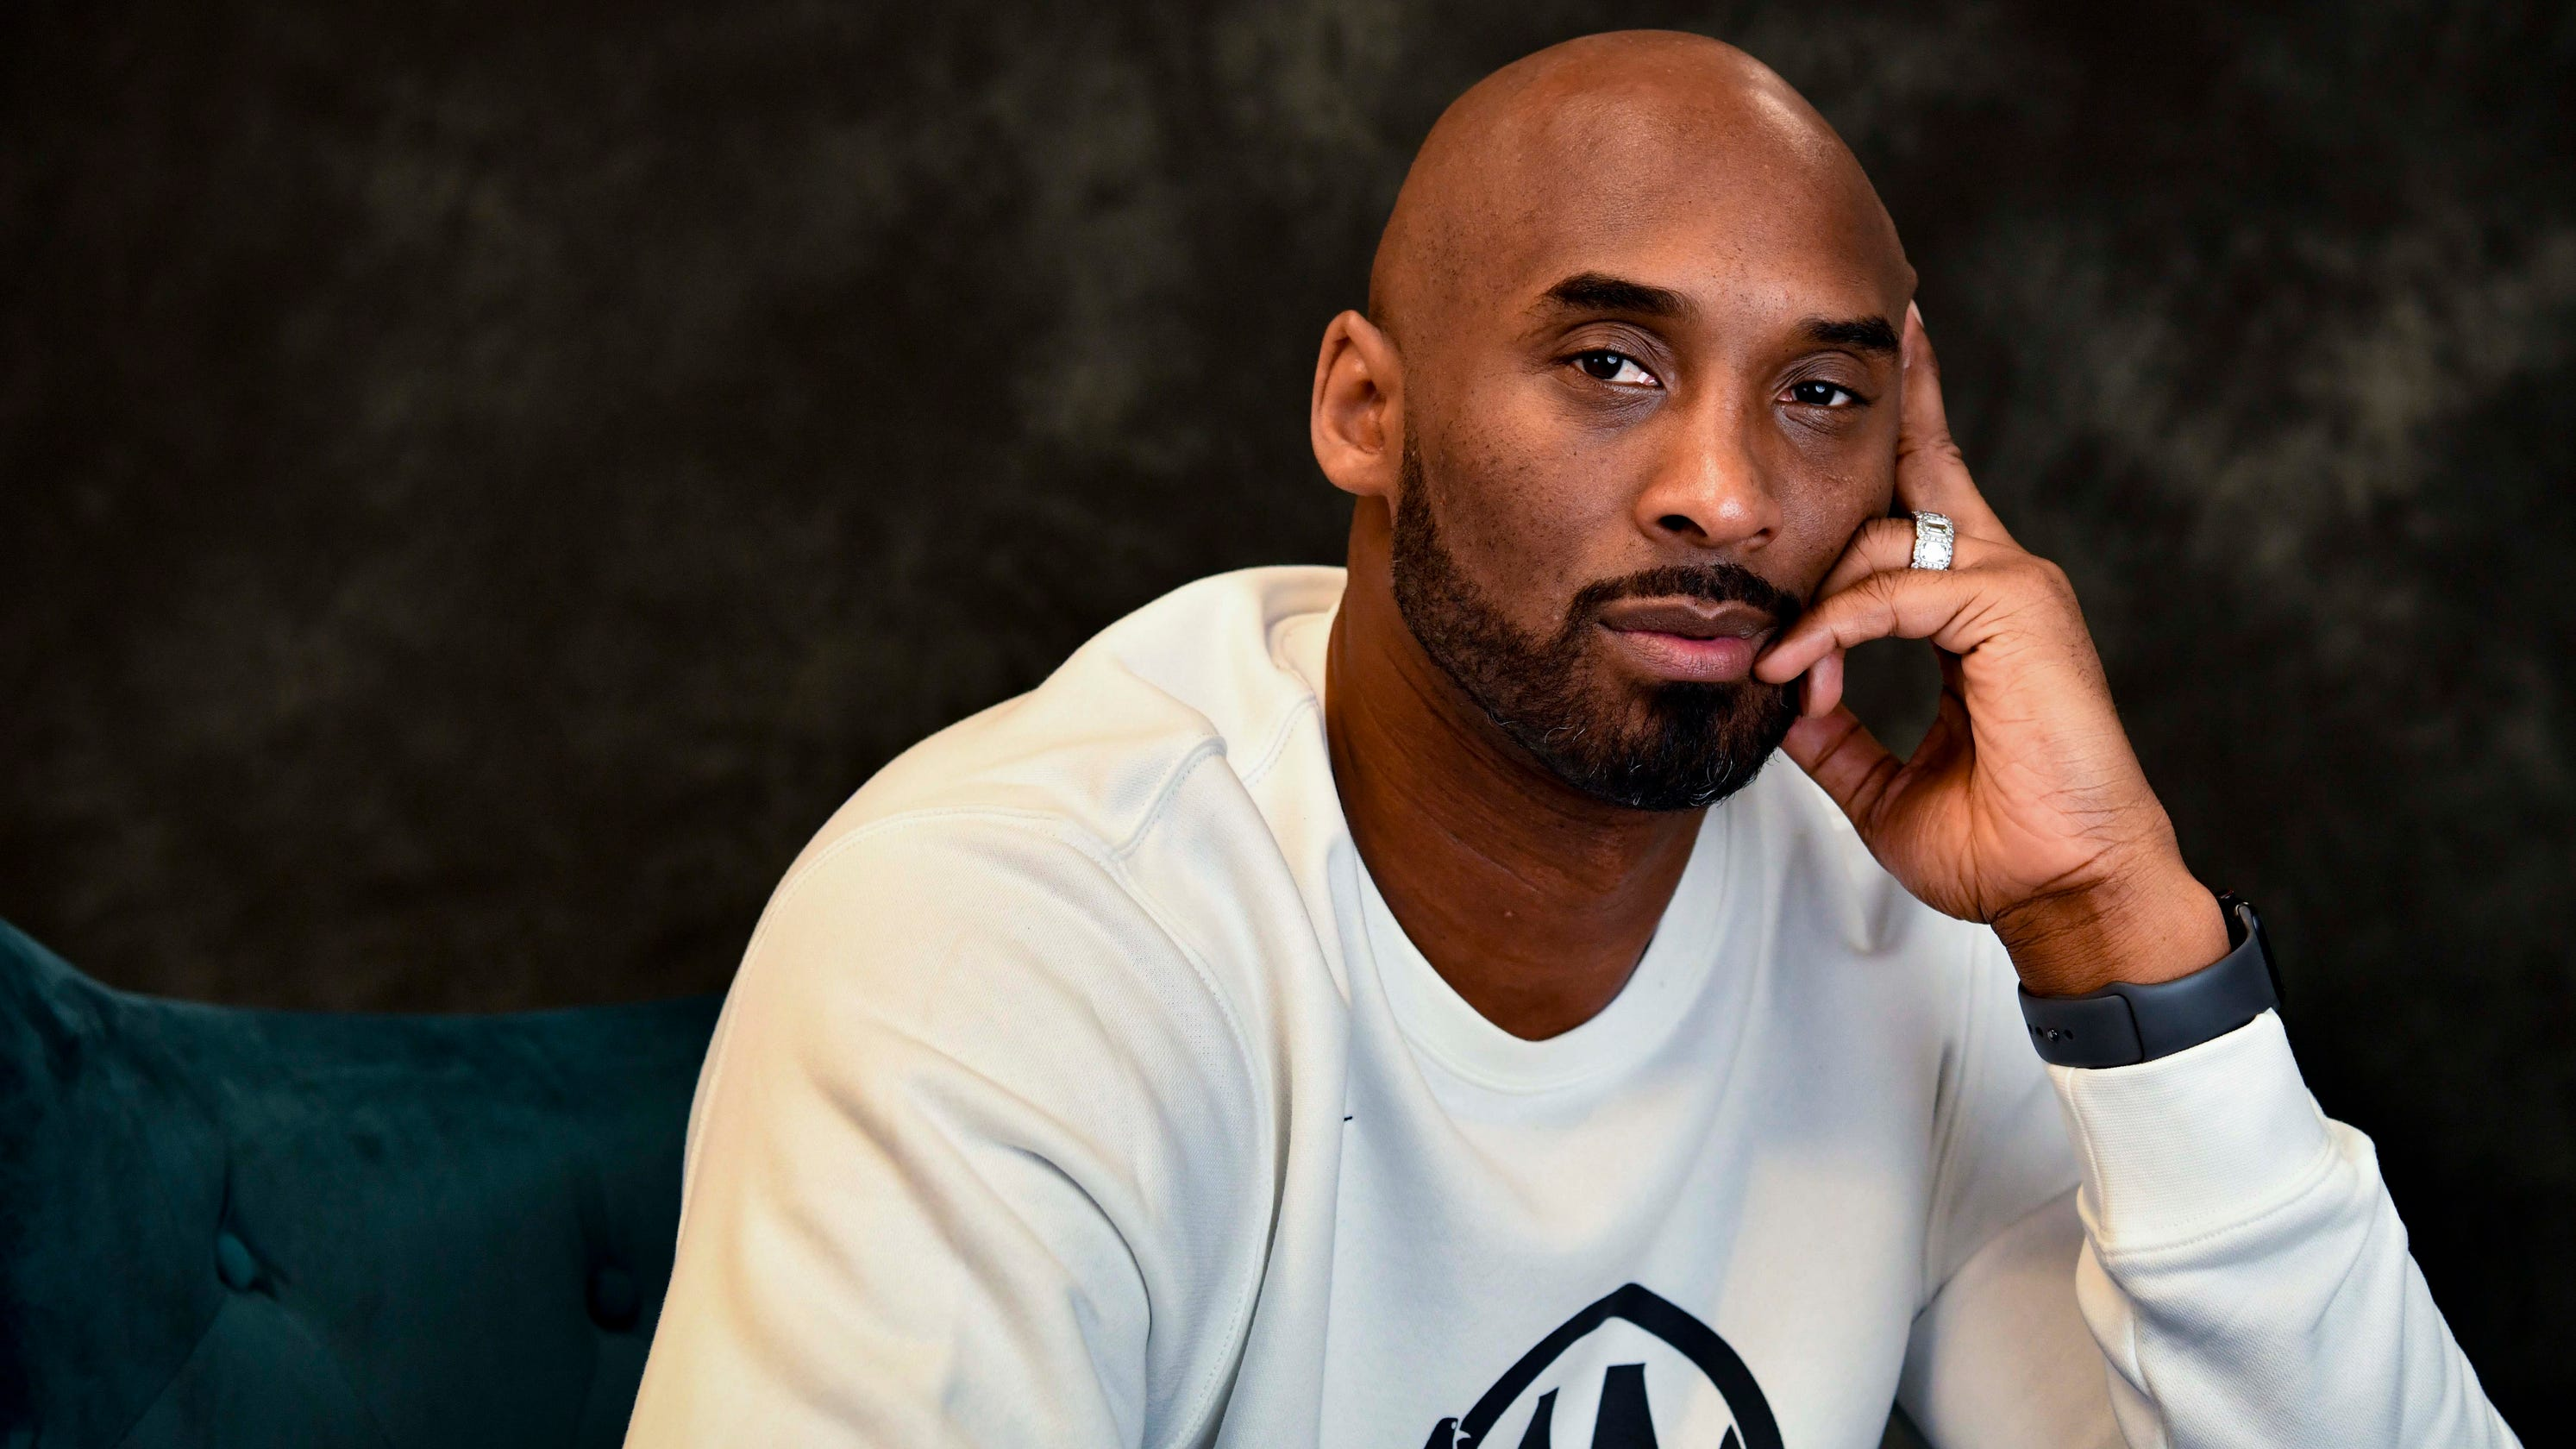 Opinion: Kobe Bryant's Hall of Fame speech would not have been like Michael Jordan's